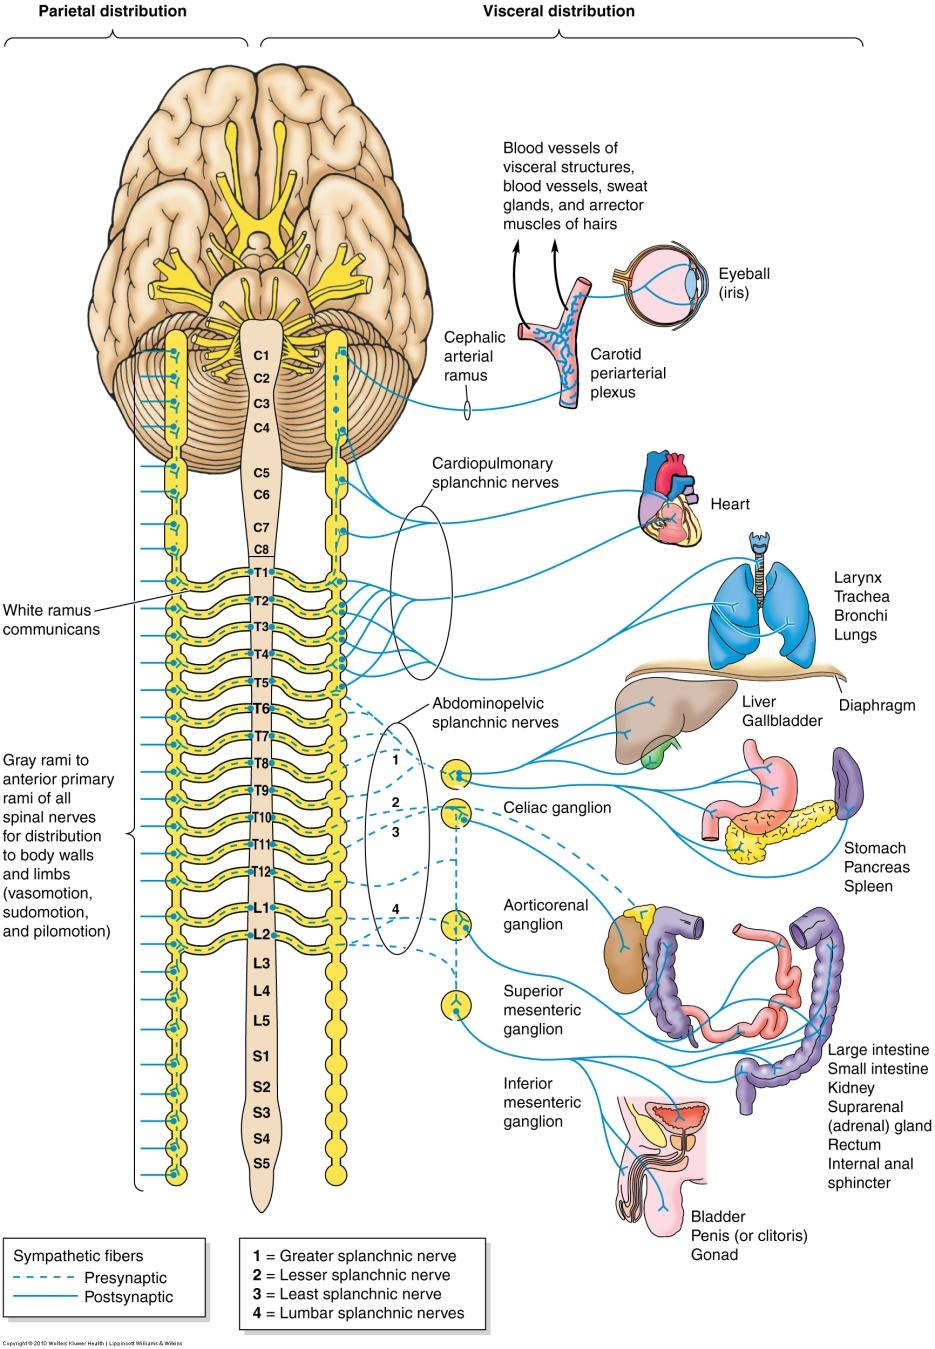 Sympathetic Nerves Some axons of the postganglionic neurons leave the trunk by